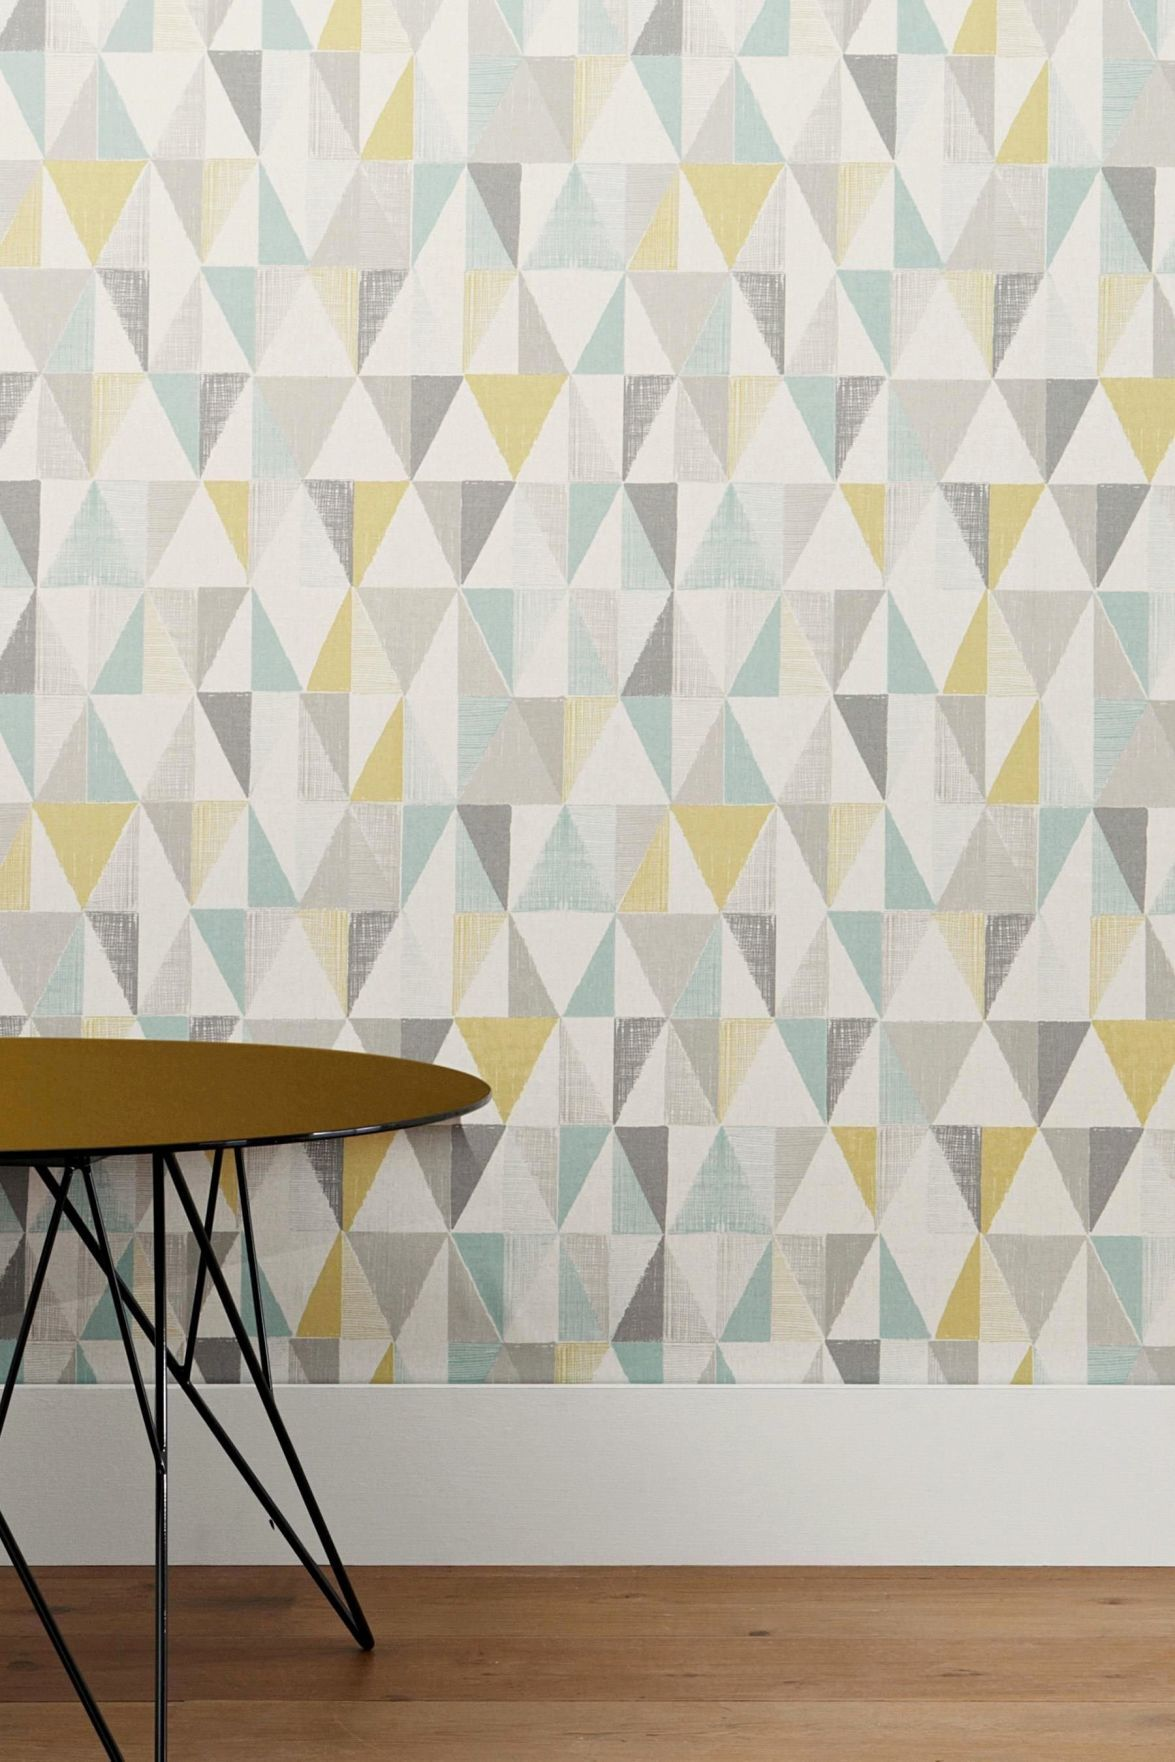 Give your home an up-to-date look with geometric shapes | Inspired ...